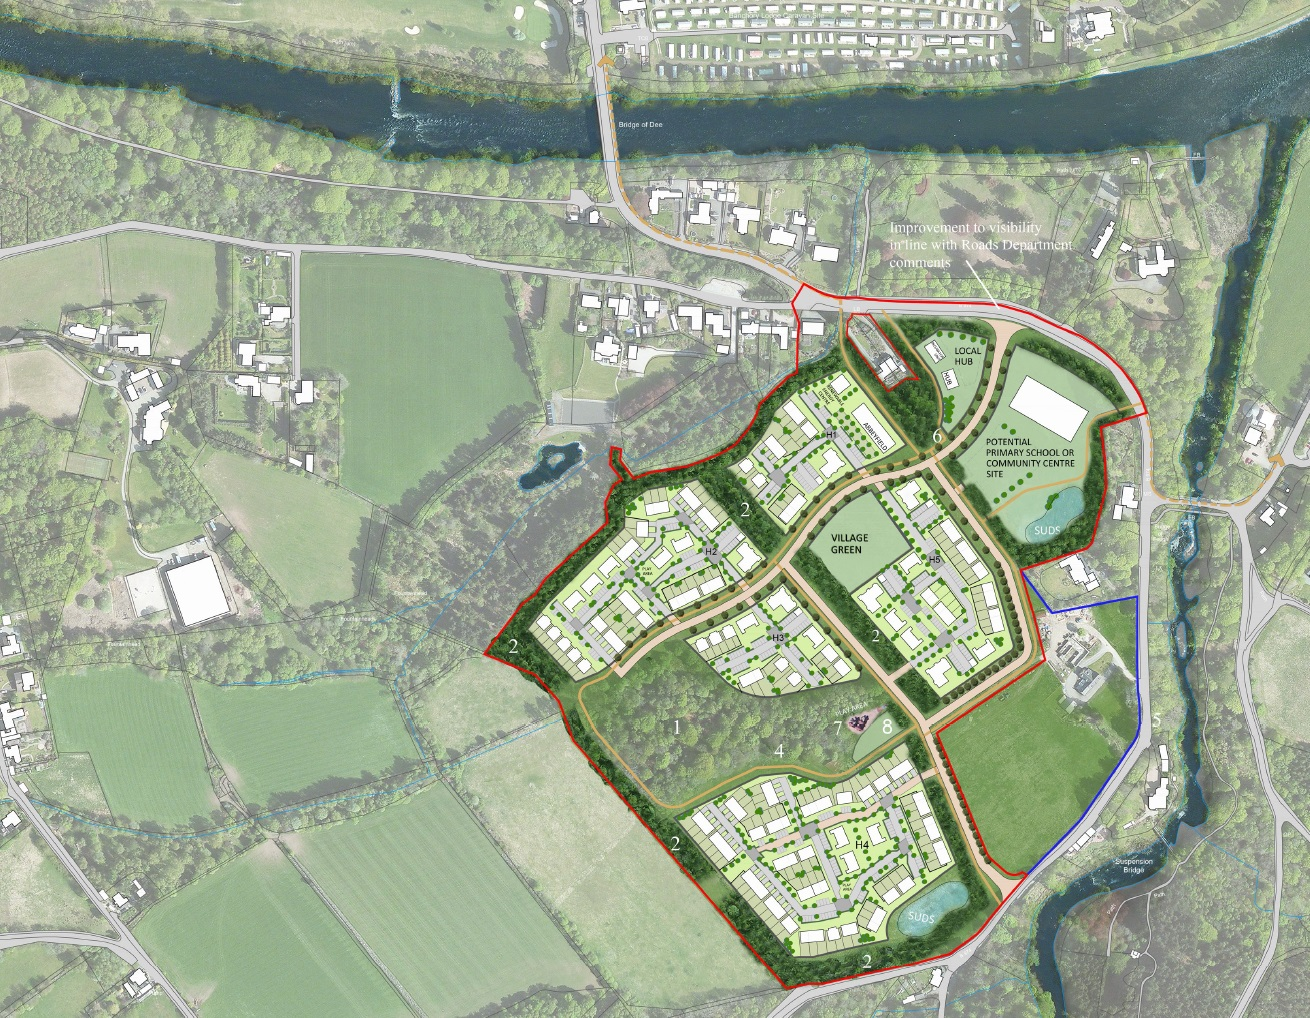 Image of 300 home masterplan